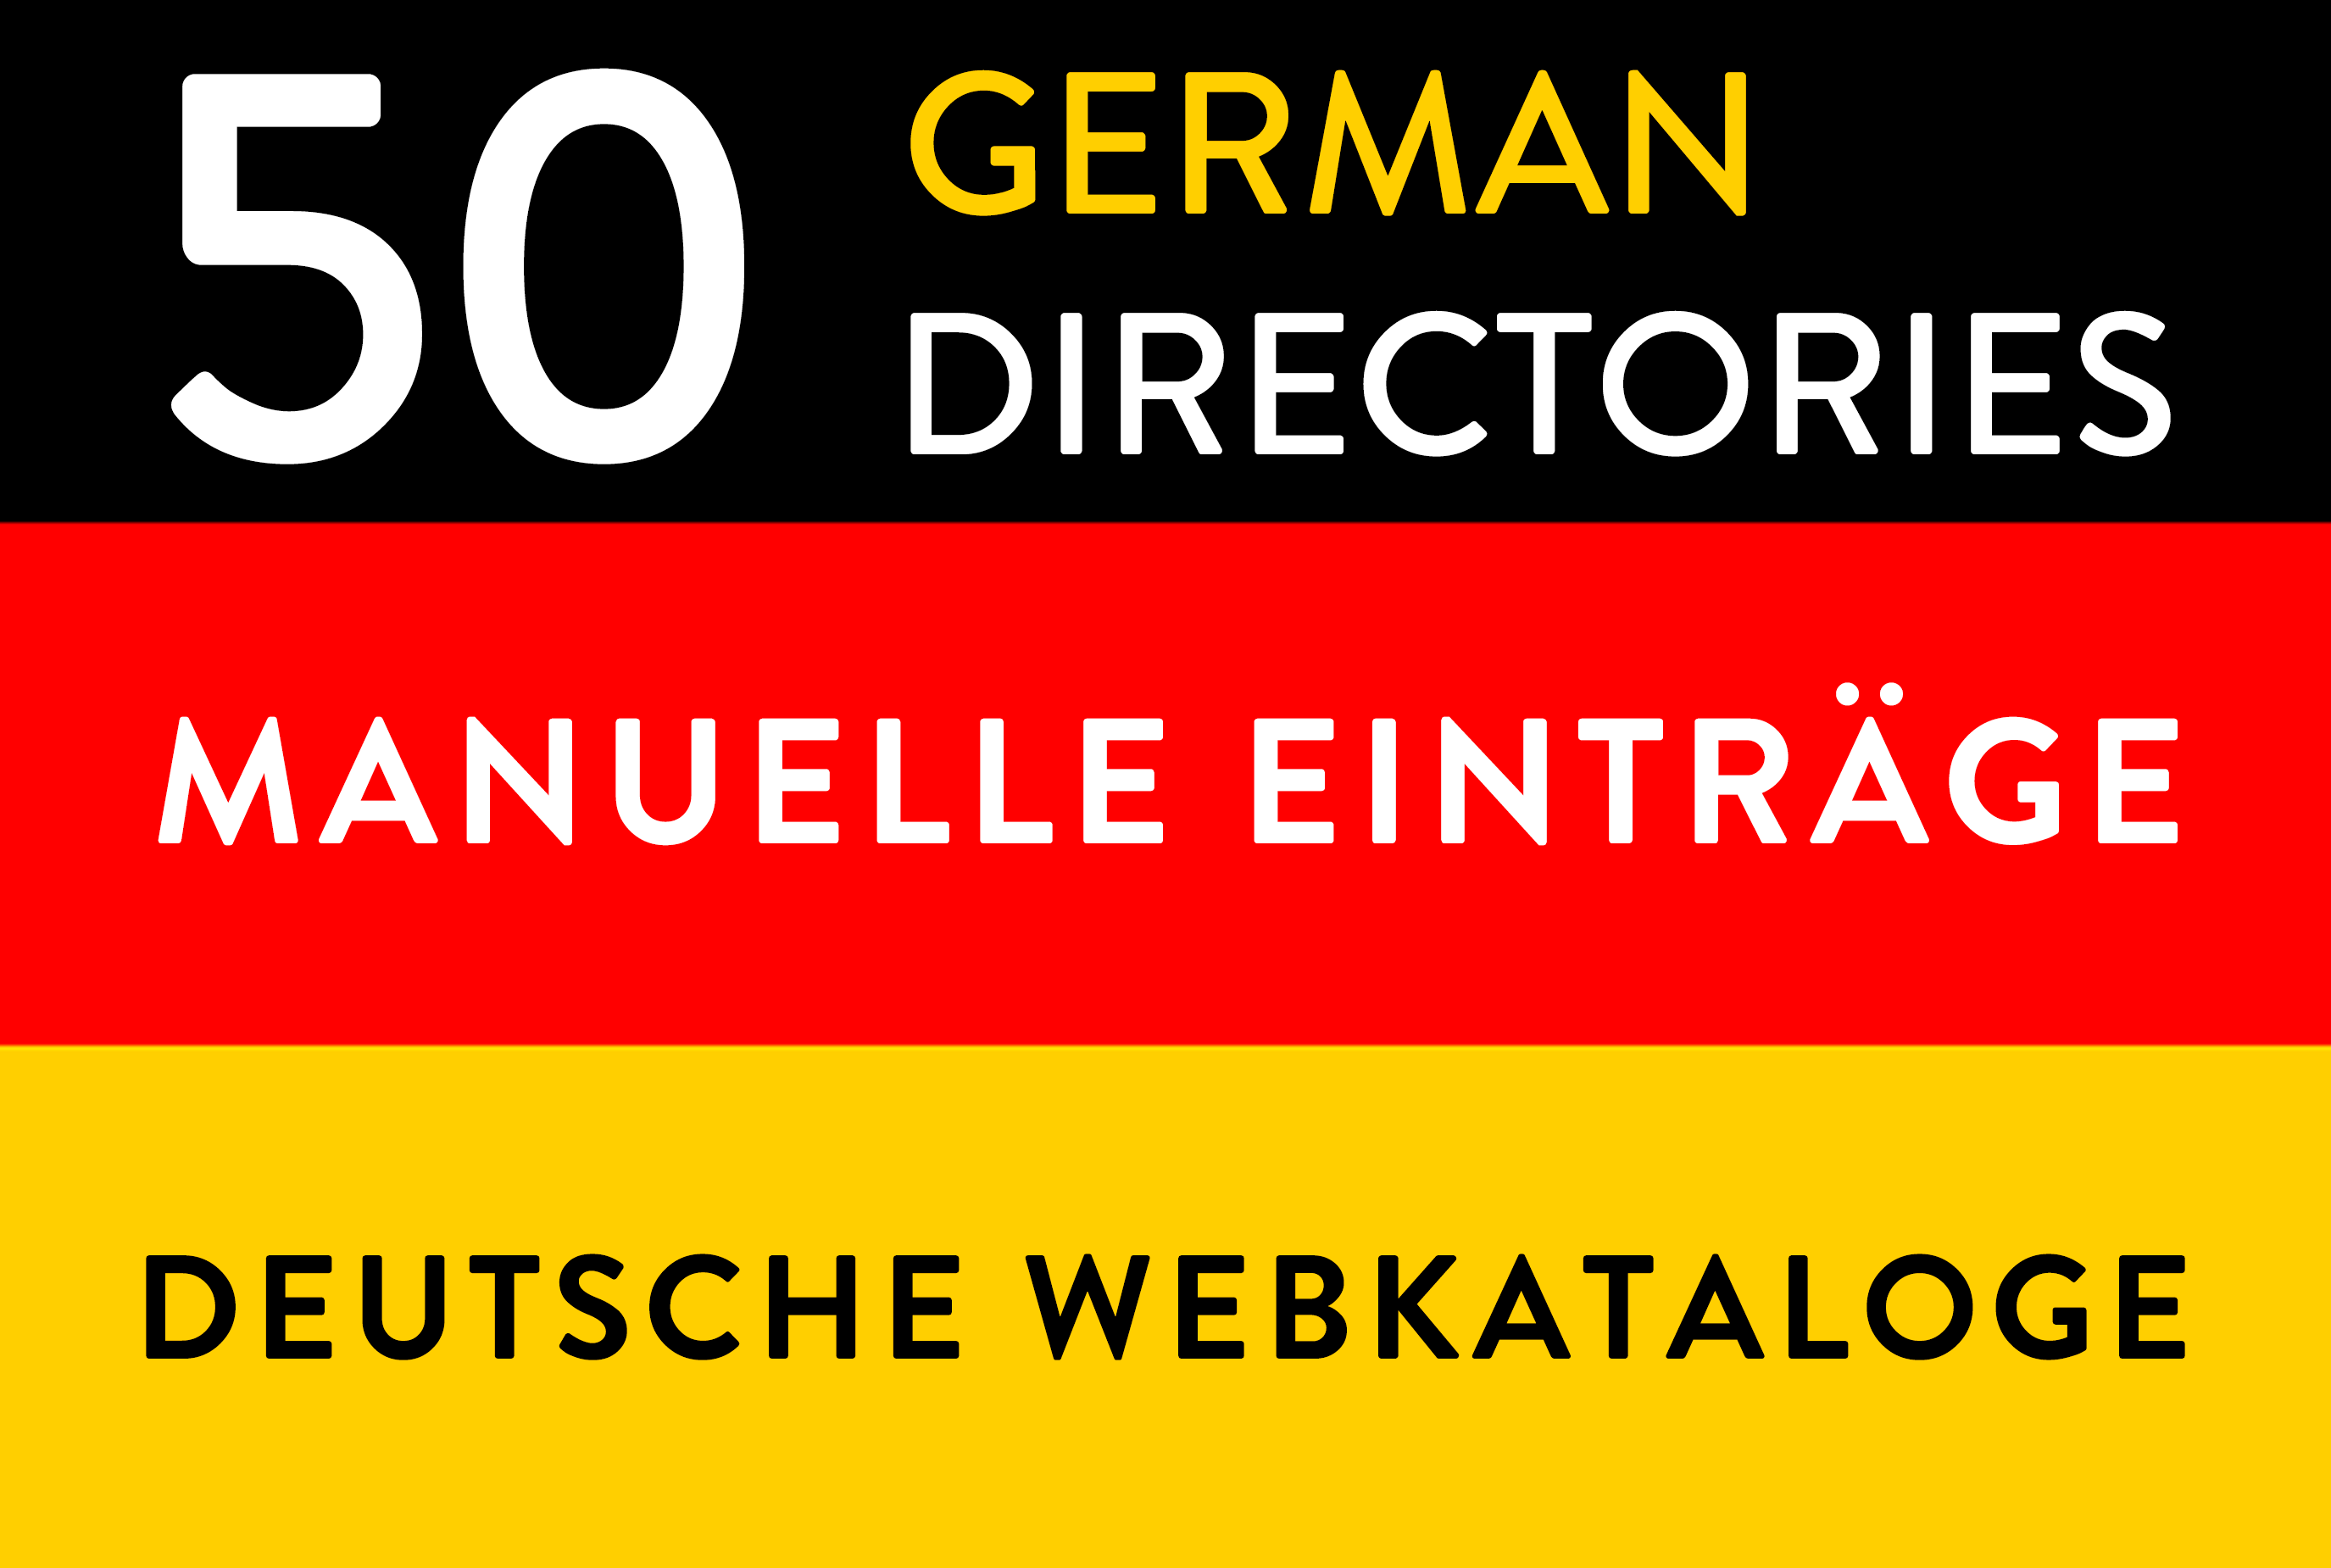 Manual submissions to 50 german deutsche directories webkataloge backlinks link building seo